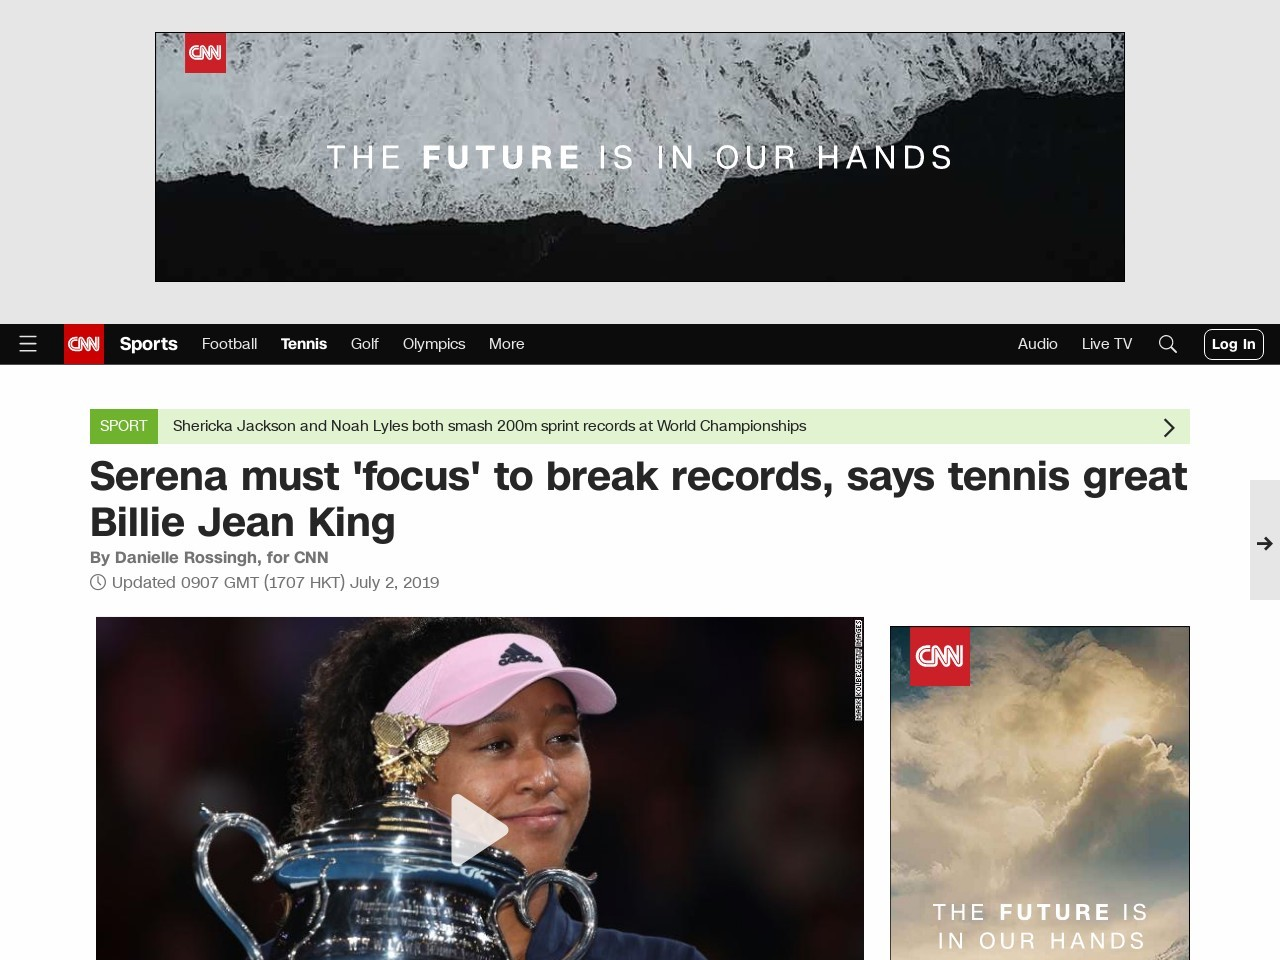 Serena Williams must 'focus' to break records, says Billie Jean King…